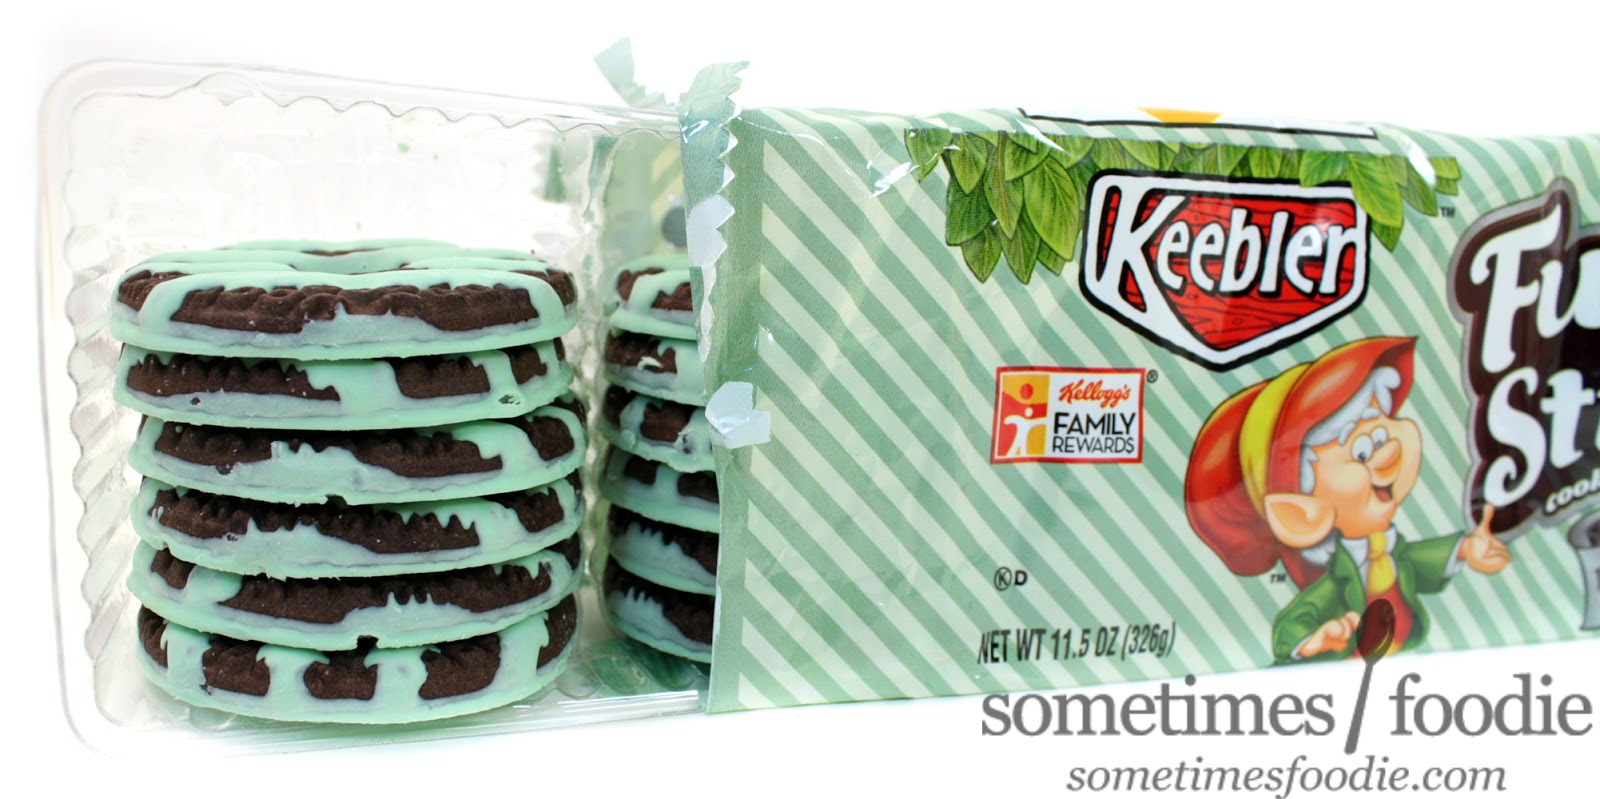 The Cookies Are Almost Brown Black Similar To Classic Oreos With Pale Mint Colored Confectionery Stripes And A